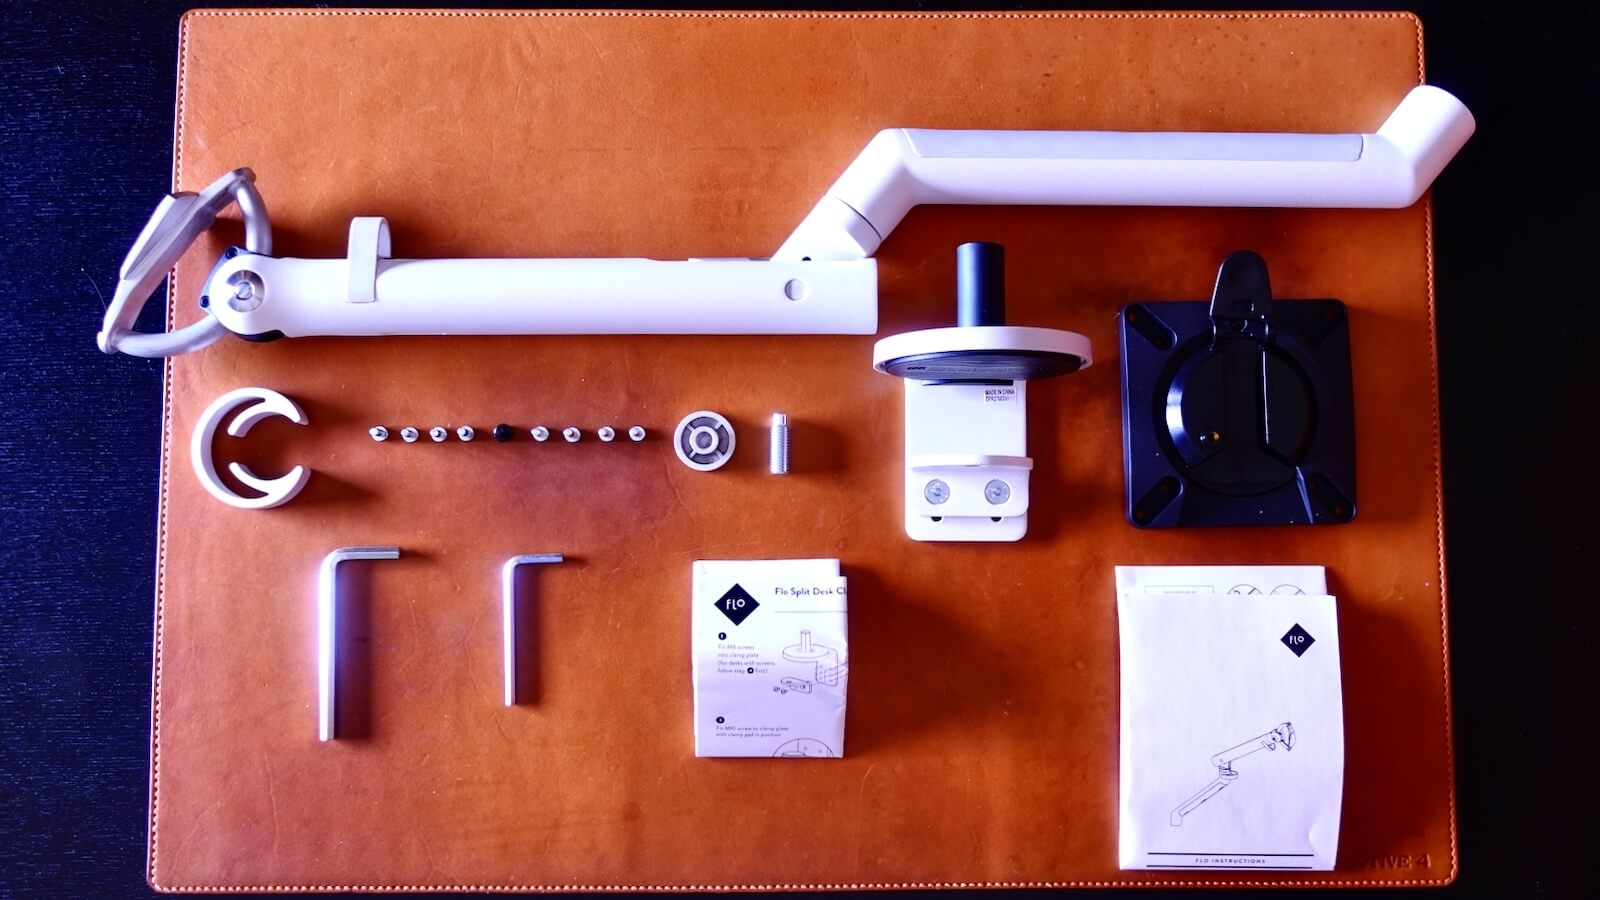 HermanMiller FLO monitor arm components